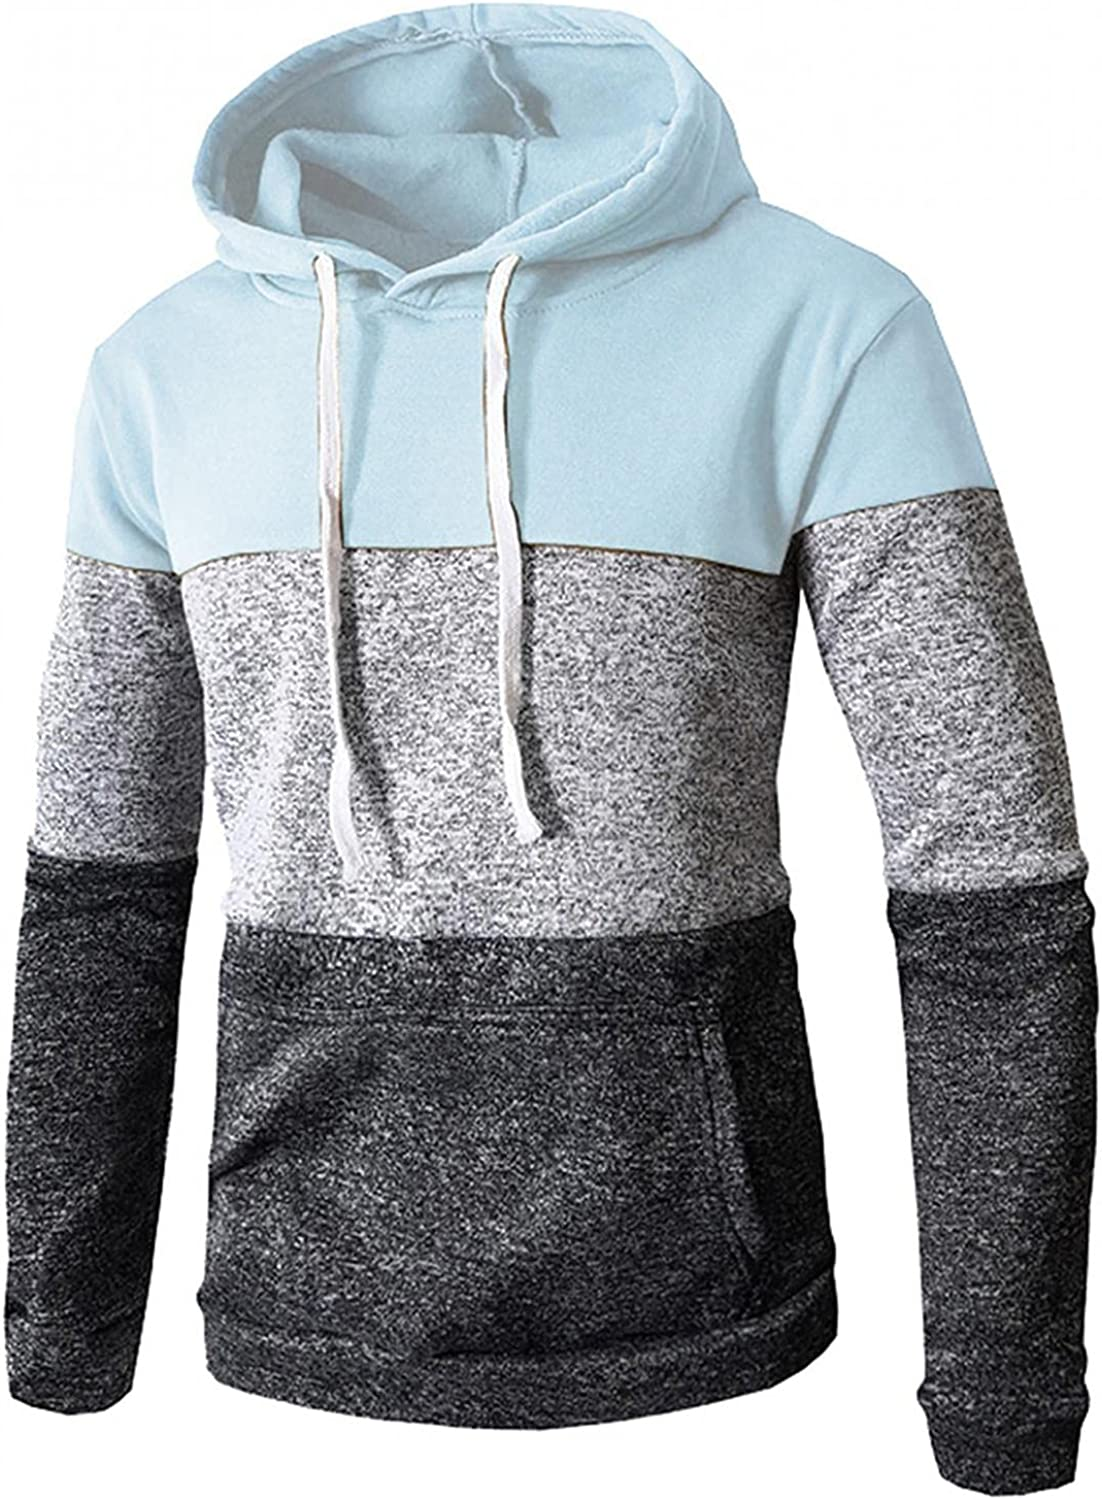 LEIYAN Mens Hoodie Pullover Casual Long Sleeve Color Block Sweatshirt Fashion Drawstring Outwear with Pockets